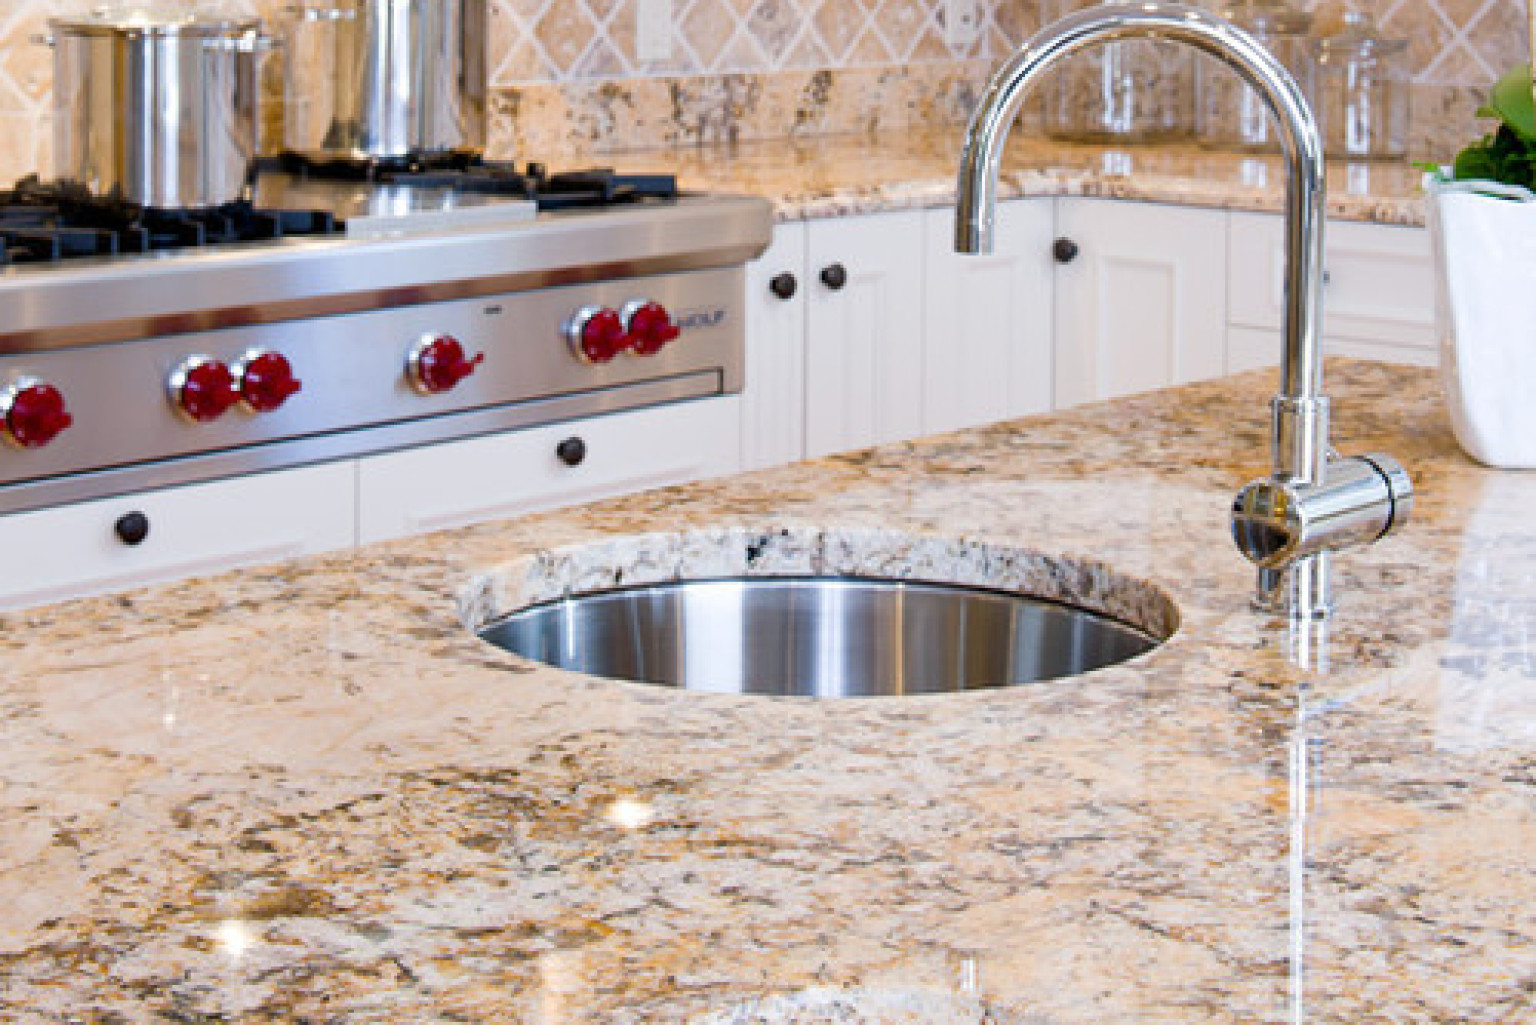 kitchen countertops buying guide n kitchen countertop materials Kitchen Countertops Buying Guide The Ins And Outs Of The Best Options On The Market PHOTOS HuffPost